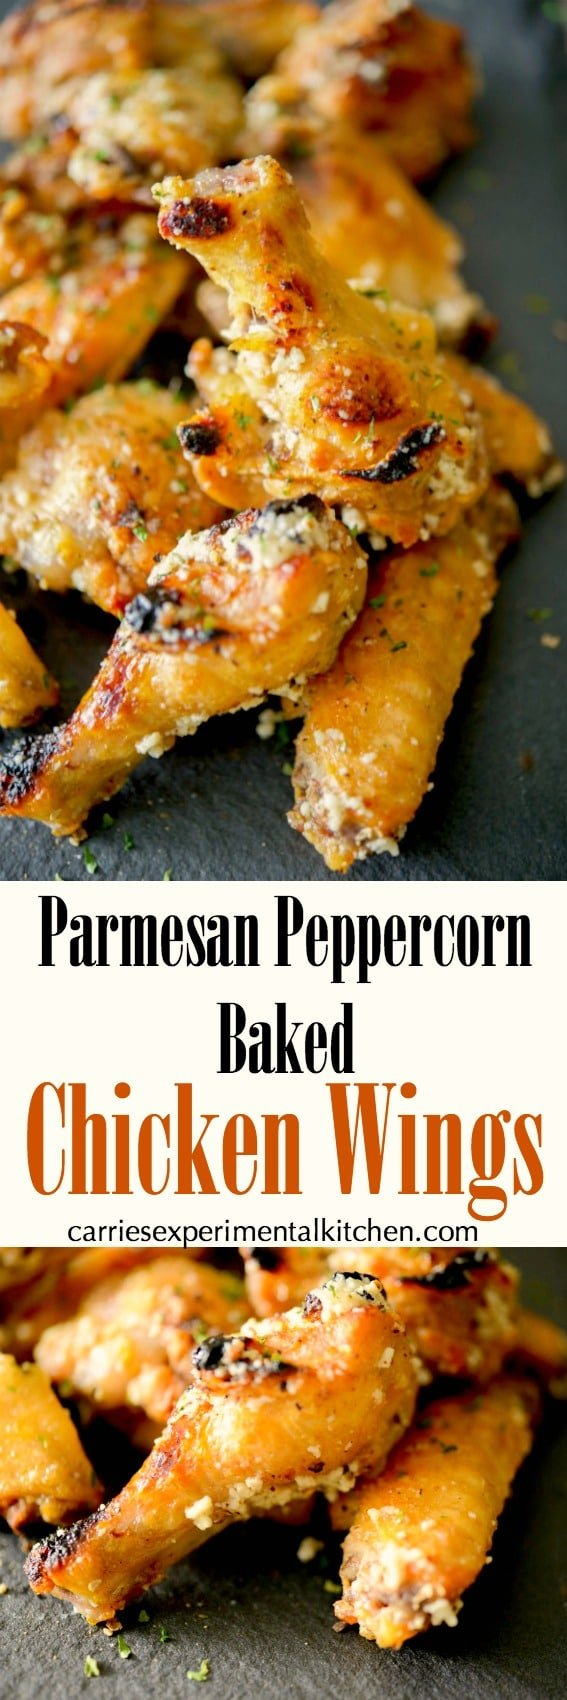 Chicken wings baked until crispy and golden brown; then topped with a Parmesan peppercorn garlic butter sauce. #chickenwings #wings #chicken #parmesan #appetizer #gameday